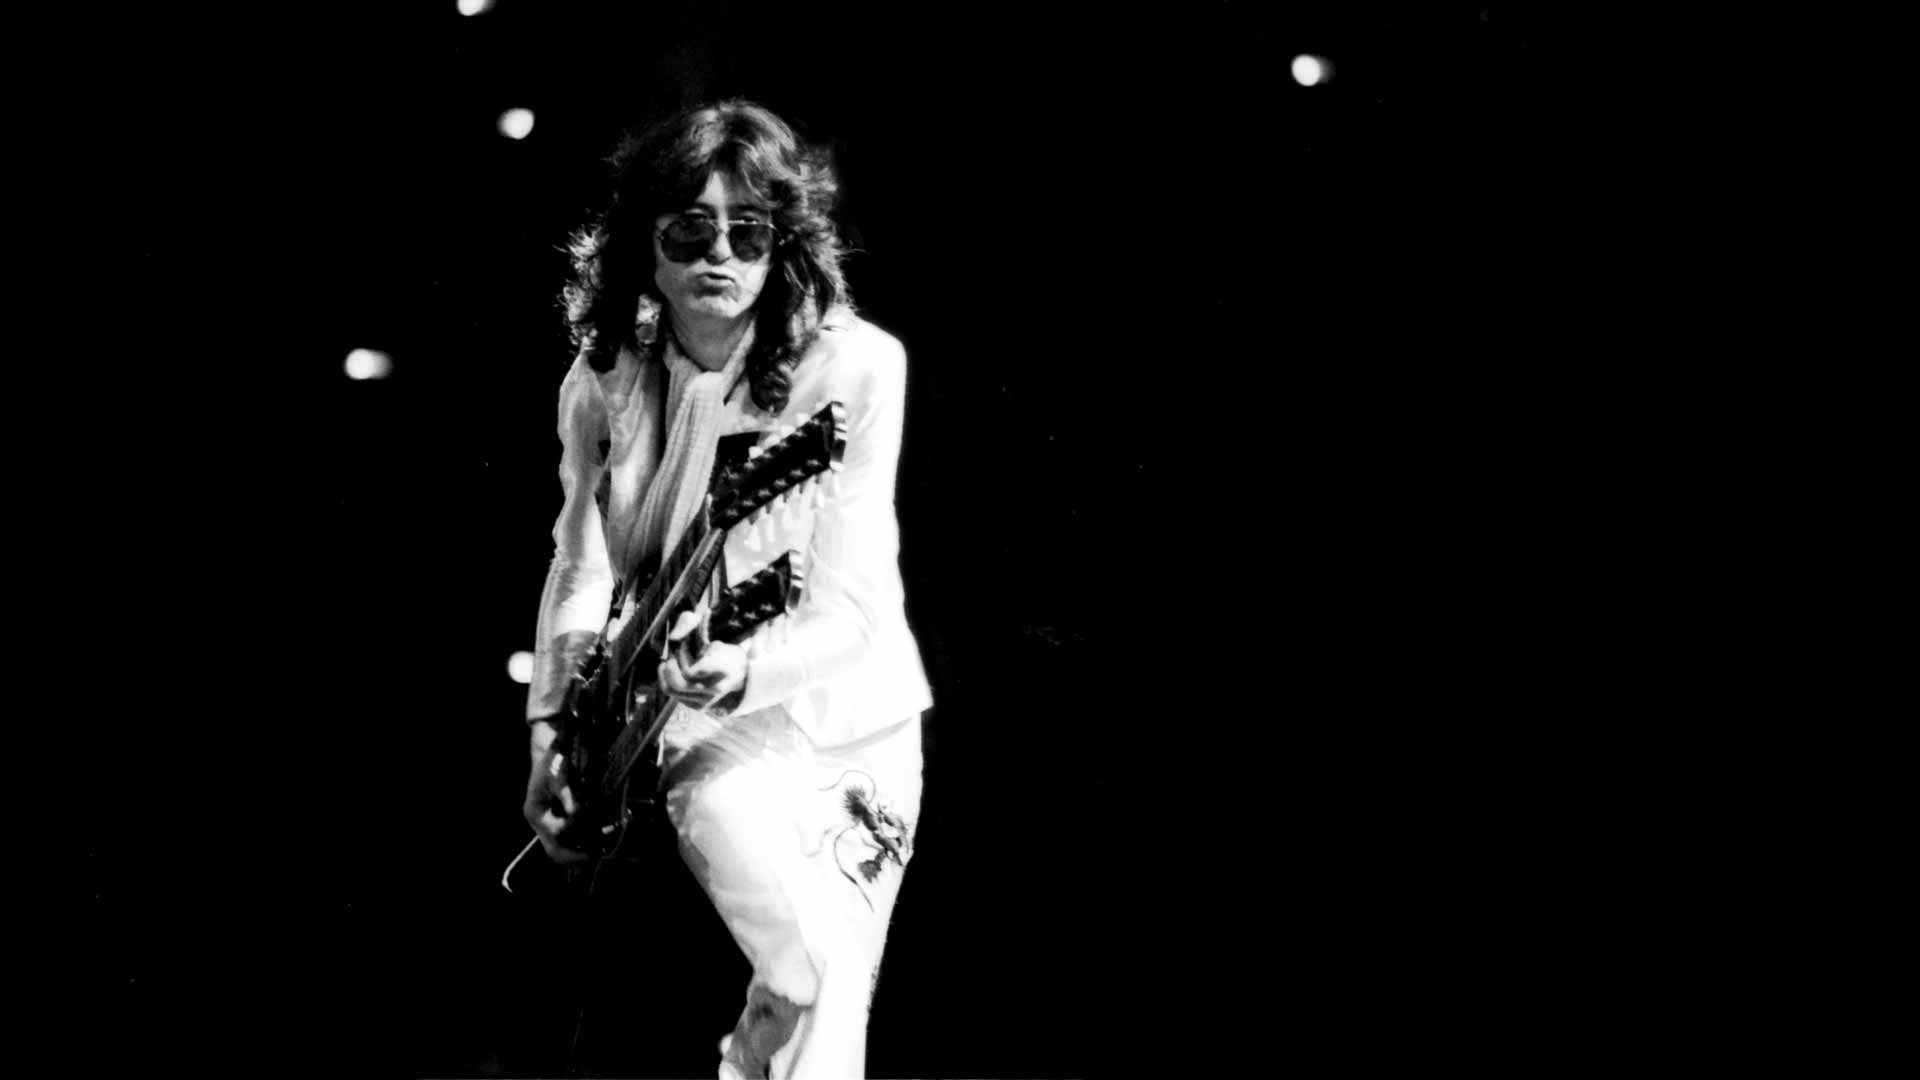 Jimmy Page Wallpapers 1920x1080